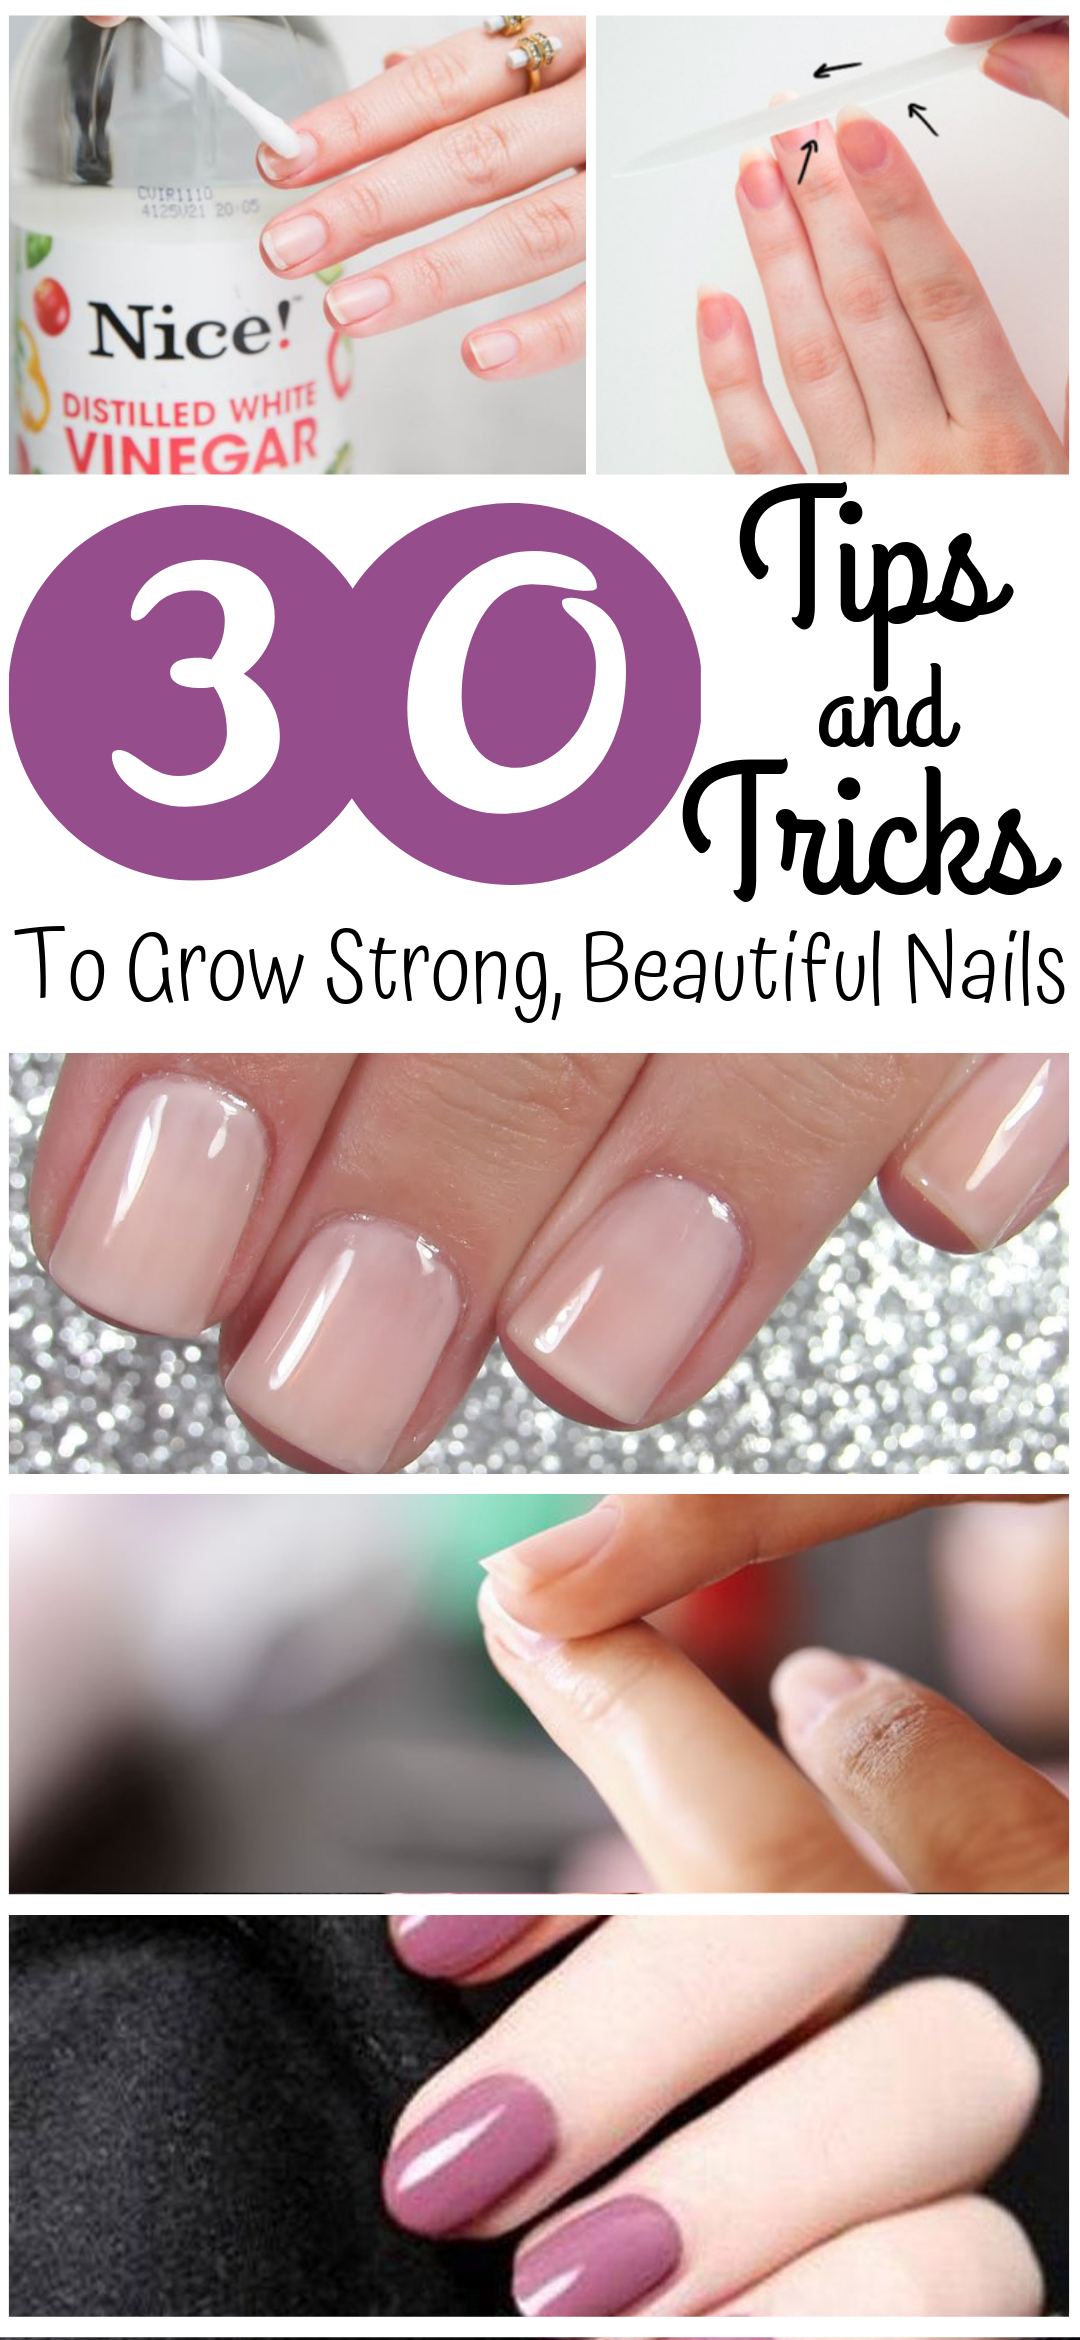 30 Tips And Tricks To Grow Strong, Beautiful Nails